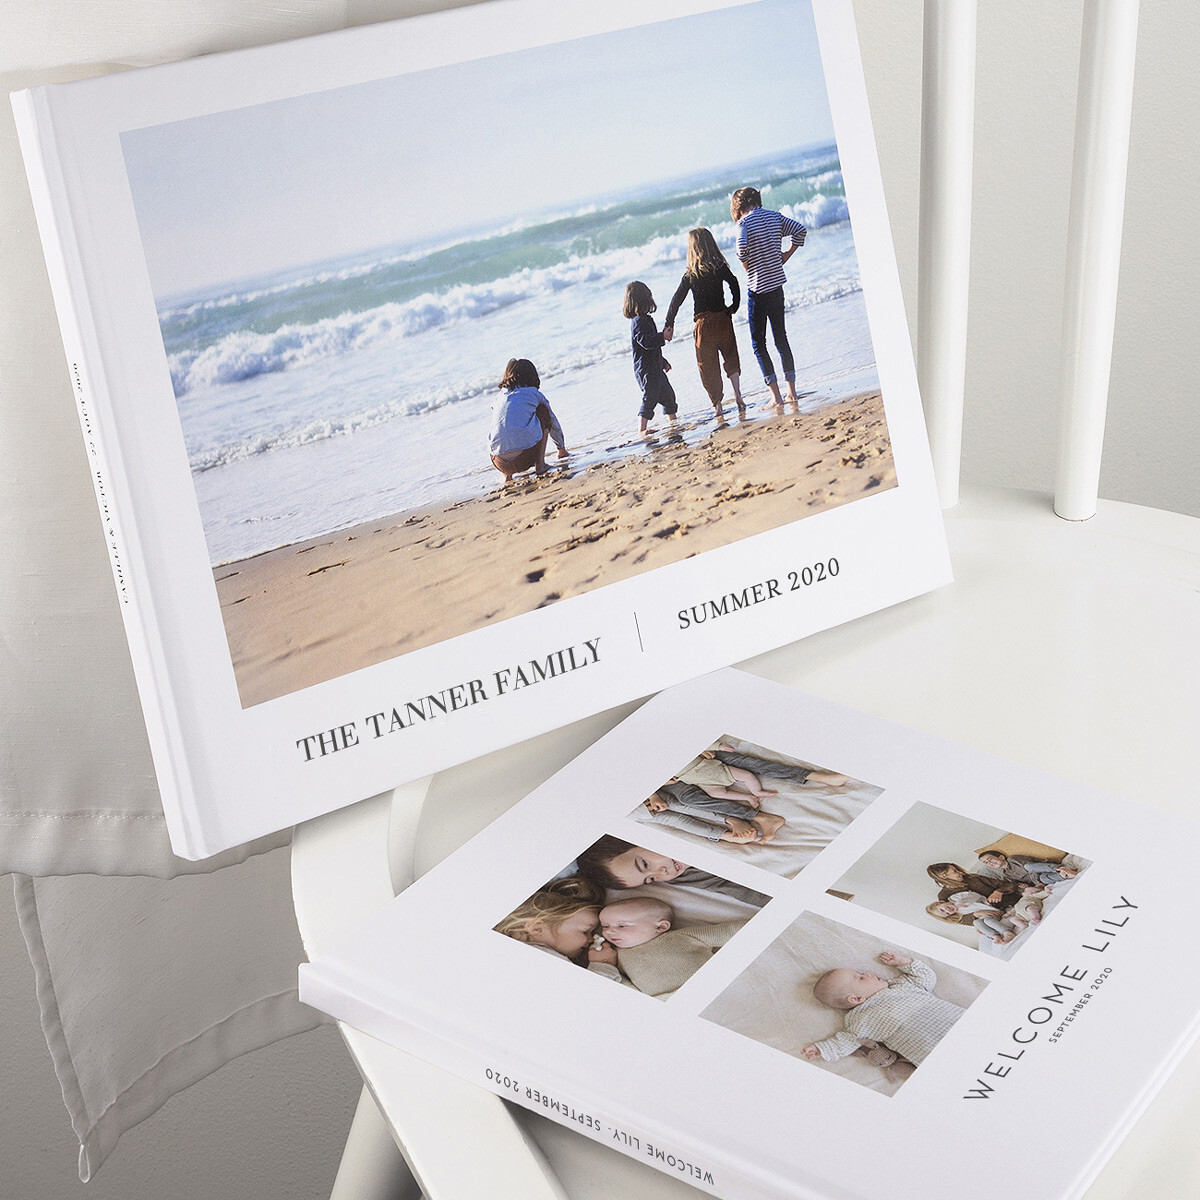 Traditional hardcover photo albums